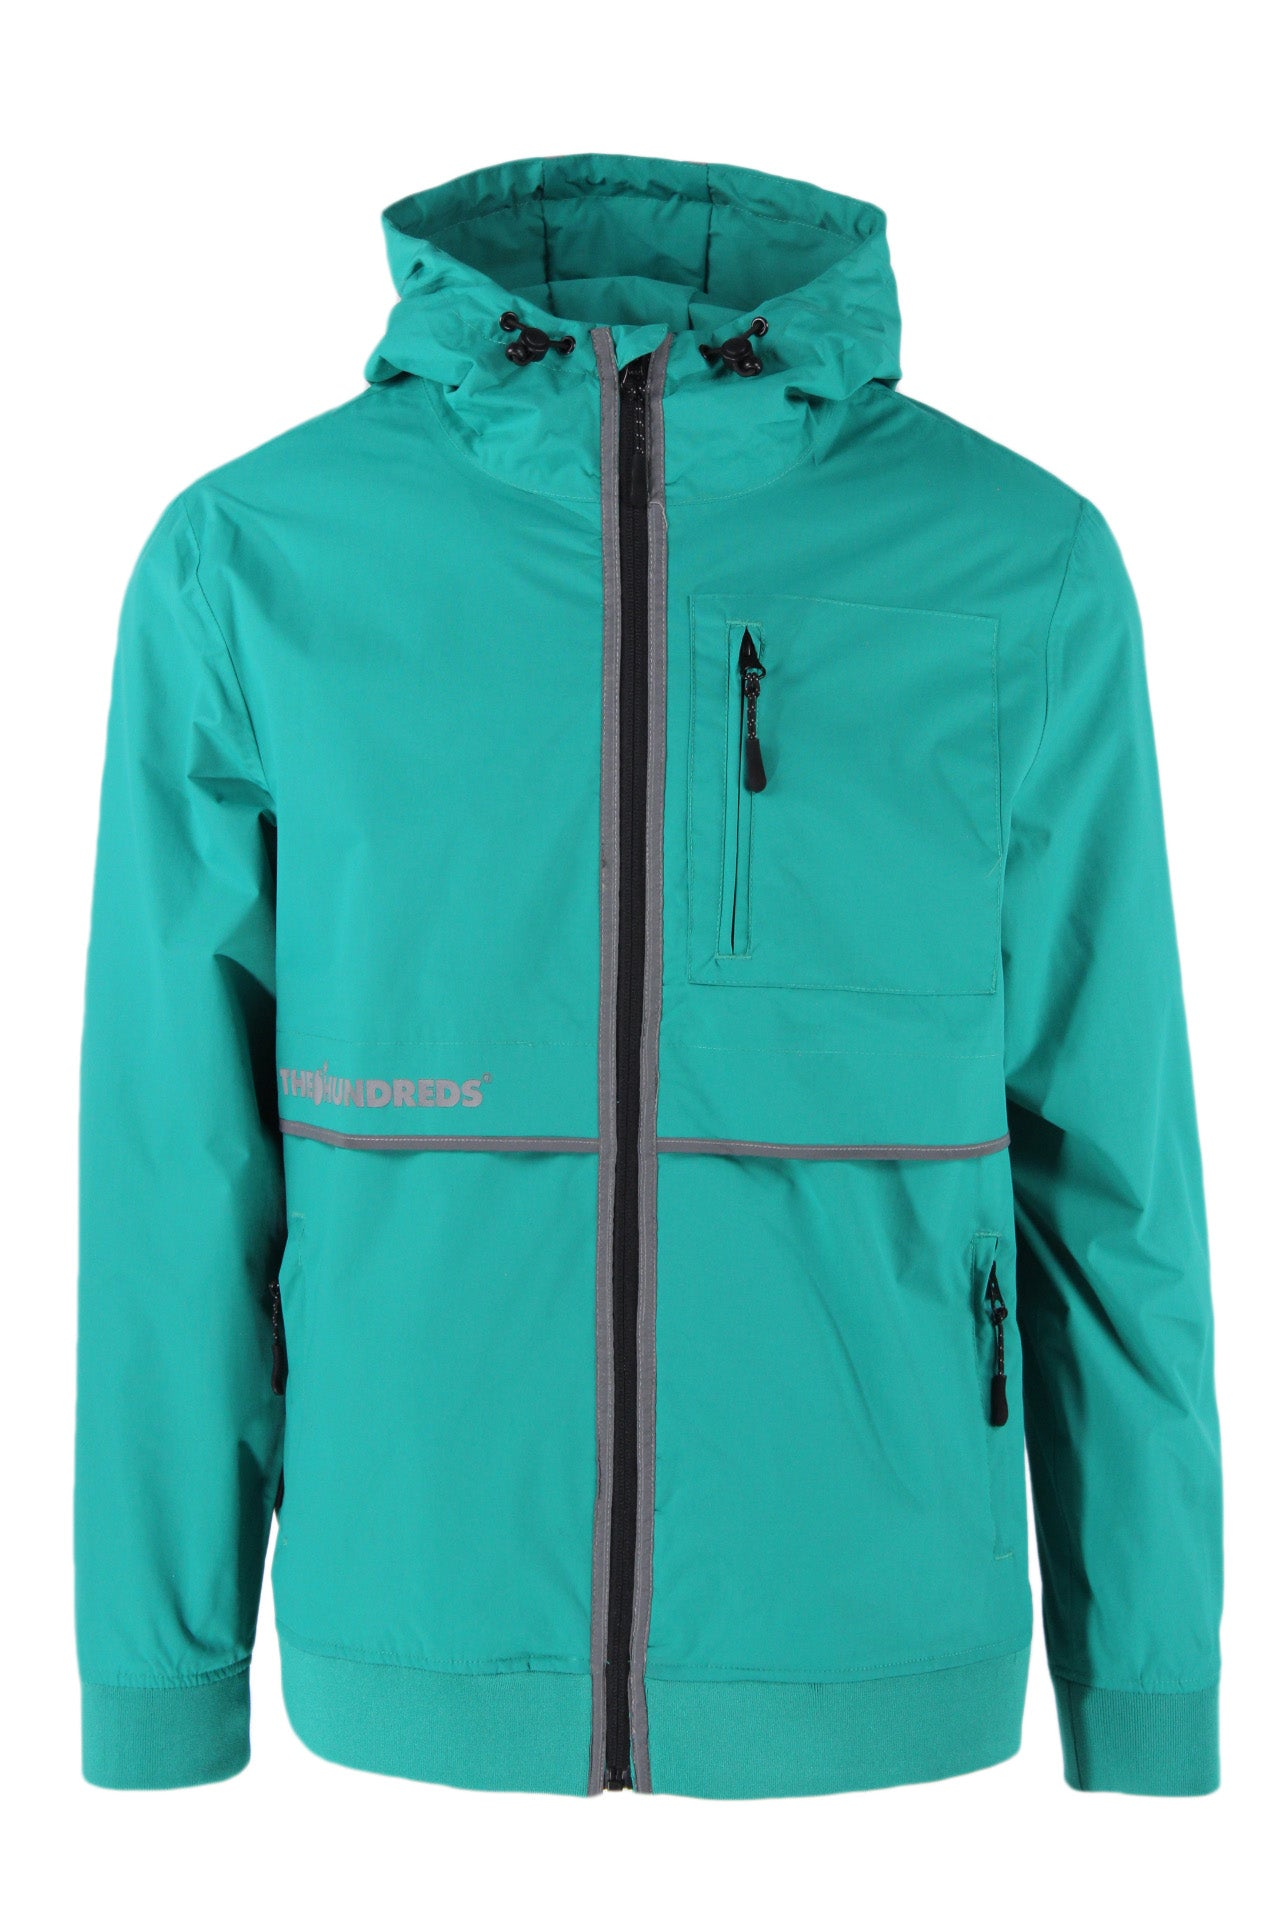 the hundreds turquoise zip up hooded 'shift' jacket. features logo printed at font, zip chest/hand pockets at sides, drawstrings at hood, with reflective accents at front and back. fully lined.